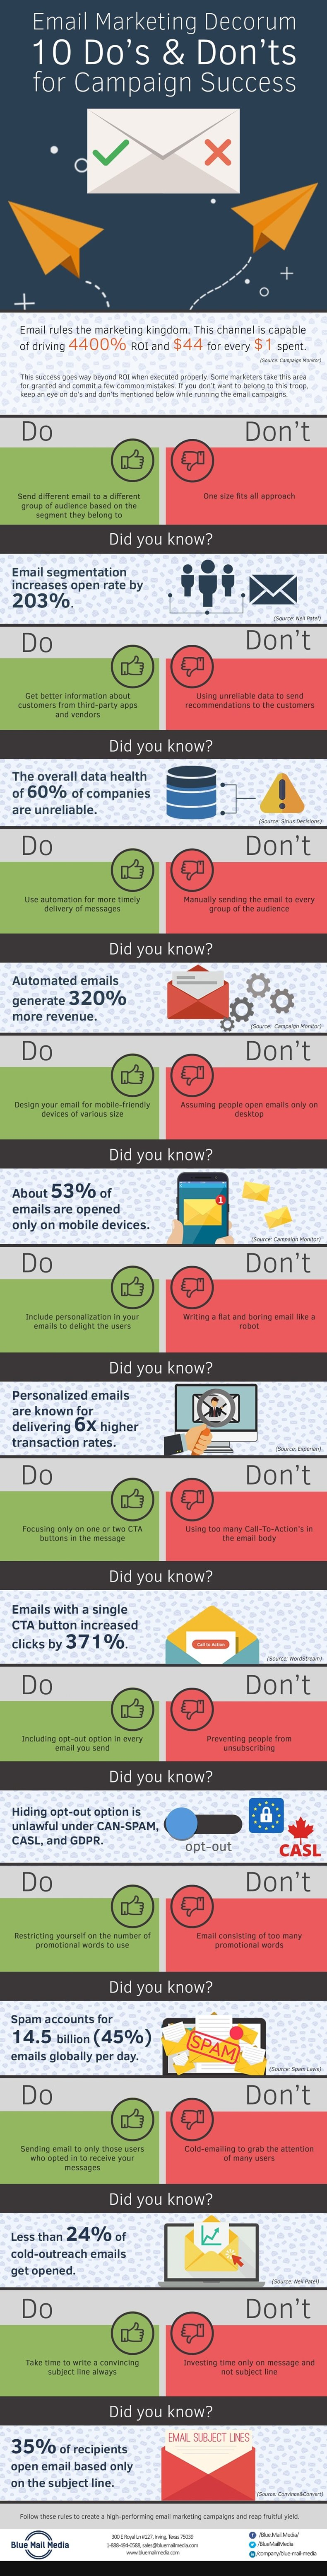 Email marketing tips infographic